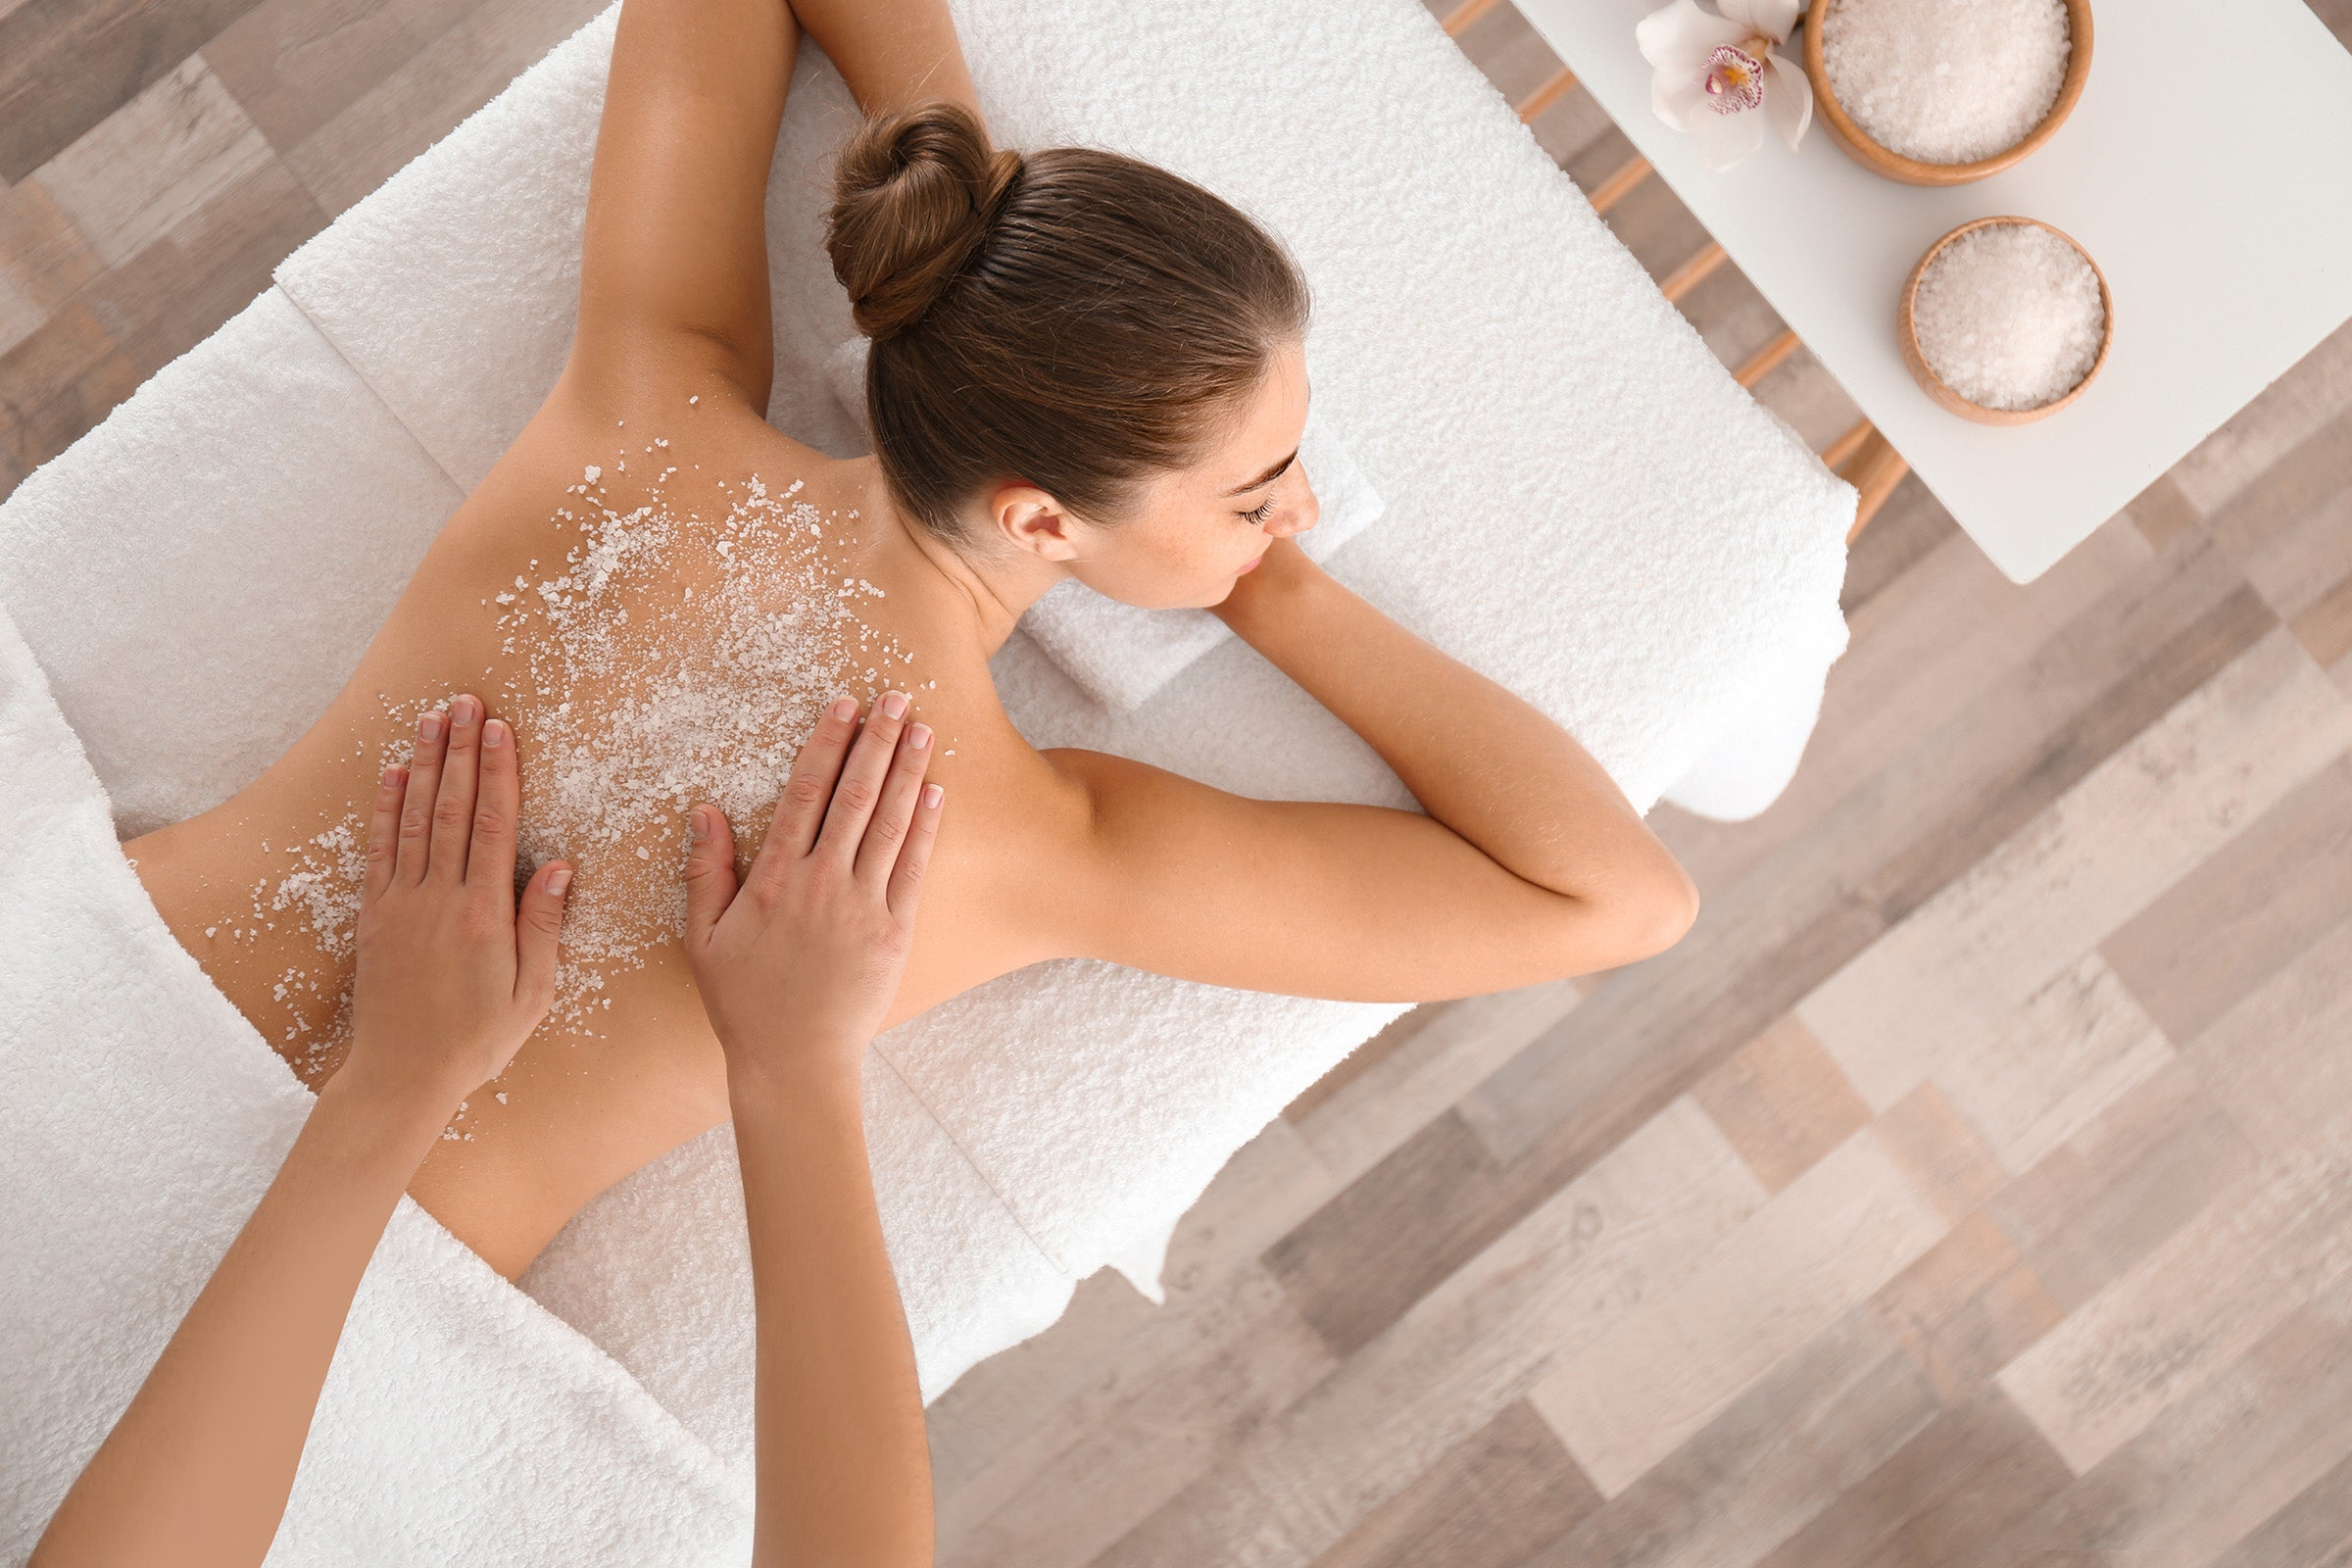 Reward yourself with something like a weekend getaway or trip to the spa.